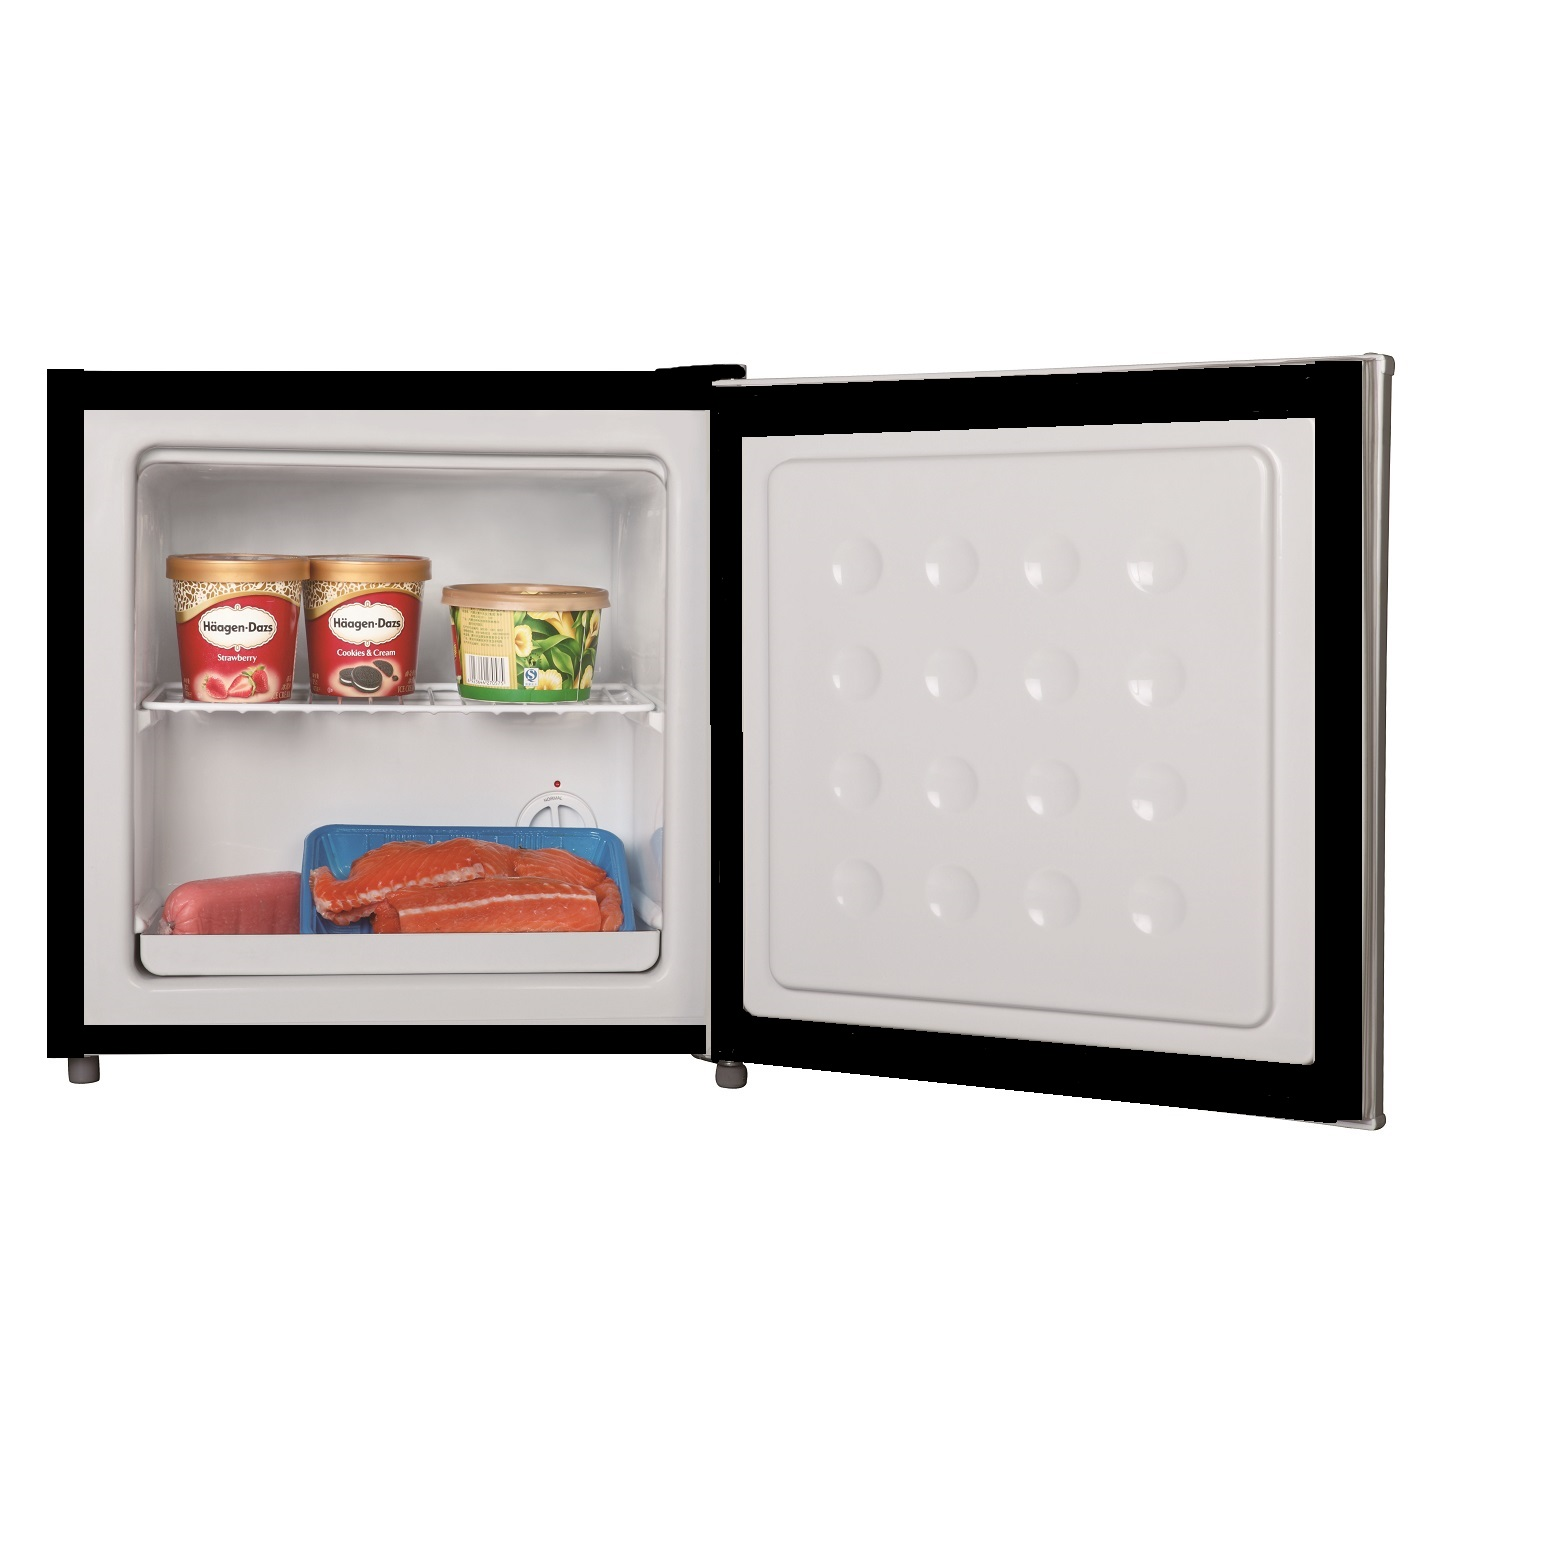 Equator Midea 1.1 cu.ft <br> Defrost Upright Freezer Black